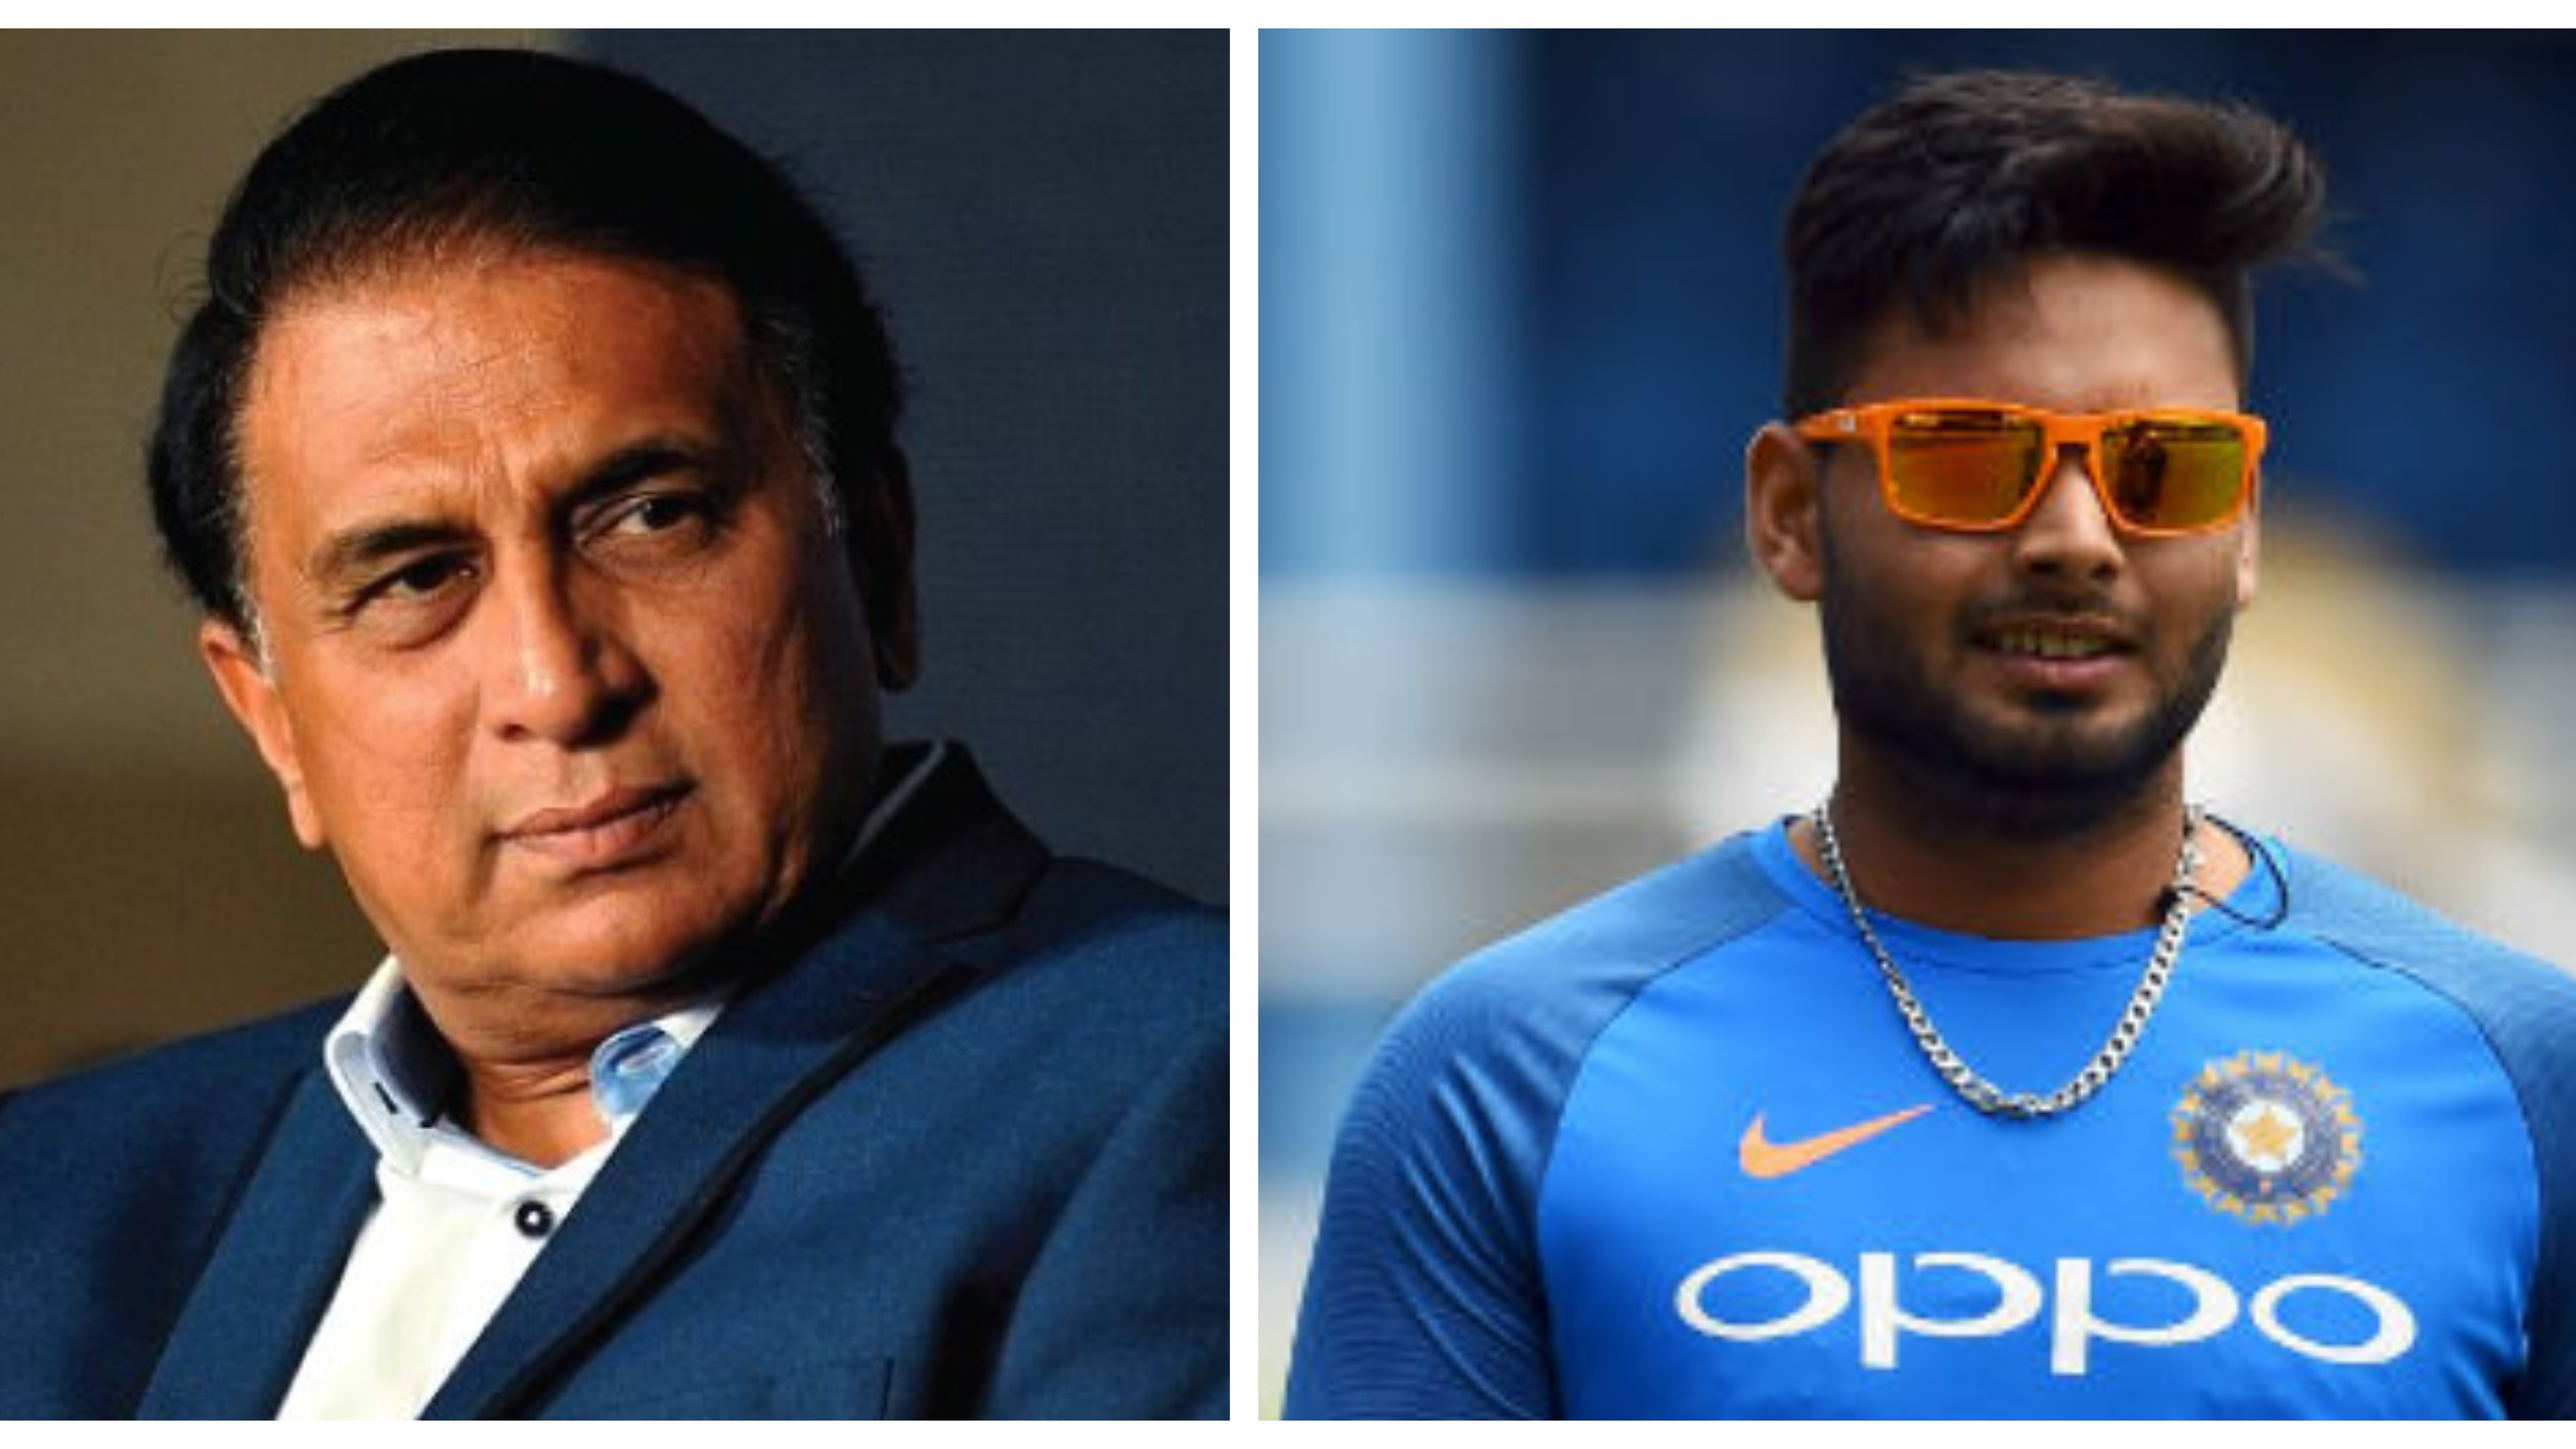 NZ v IND 2019: Gavaskar plays down Rishabh Pant's failure in the Wellington T20I